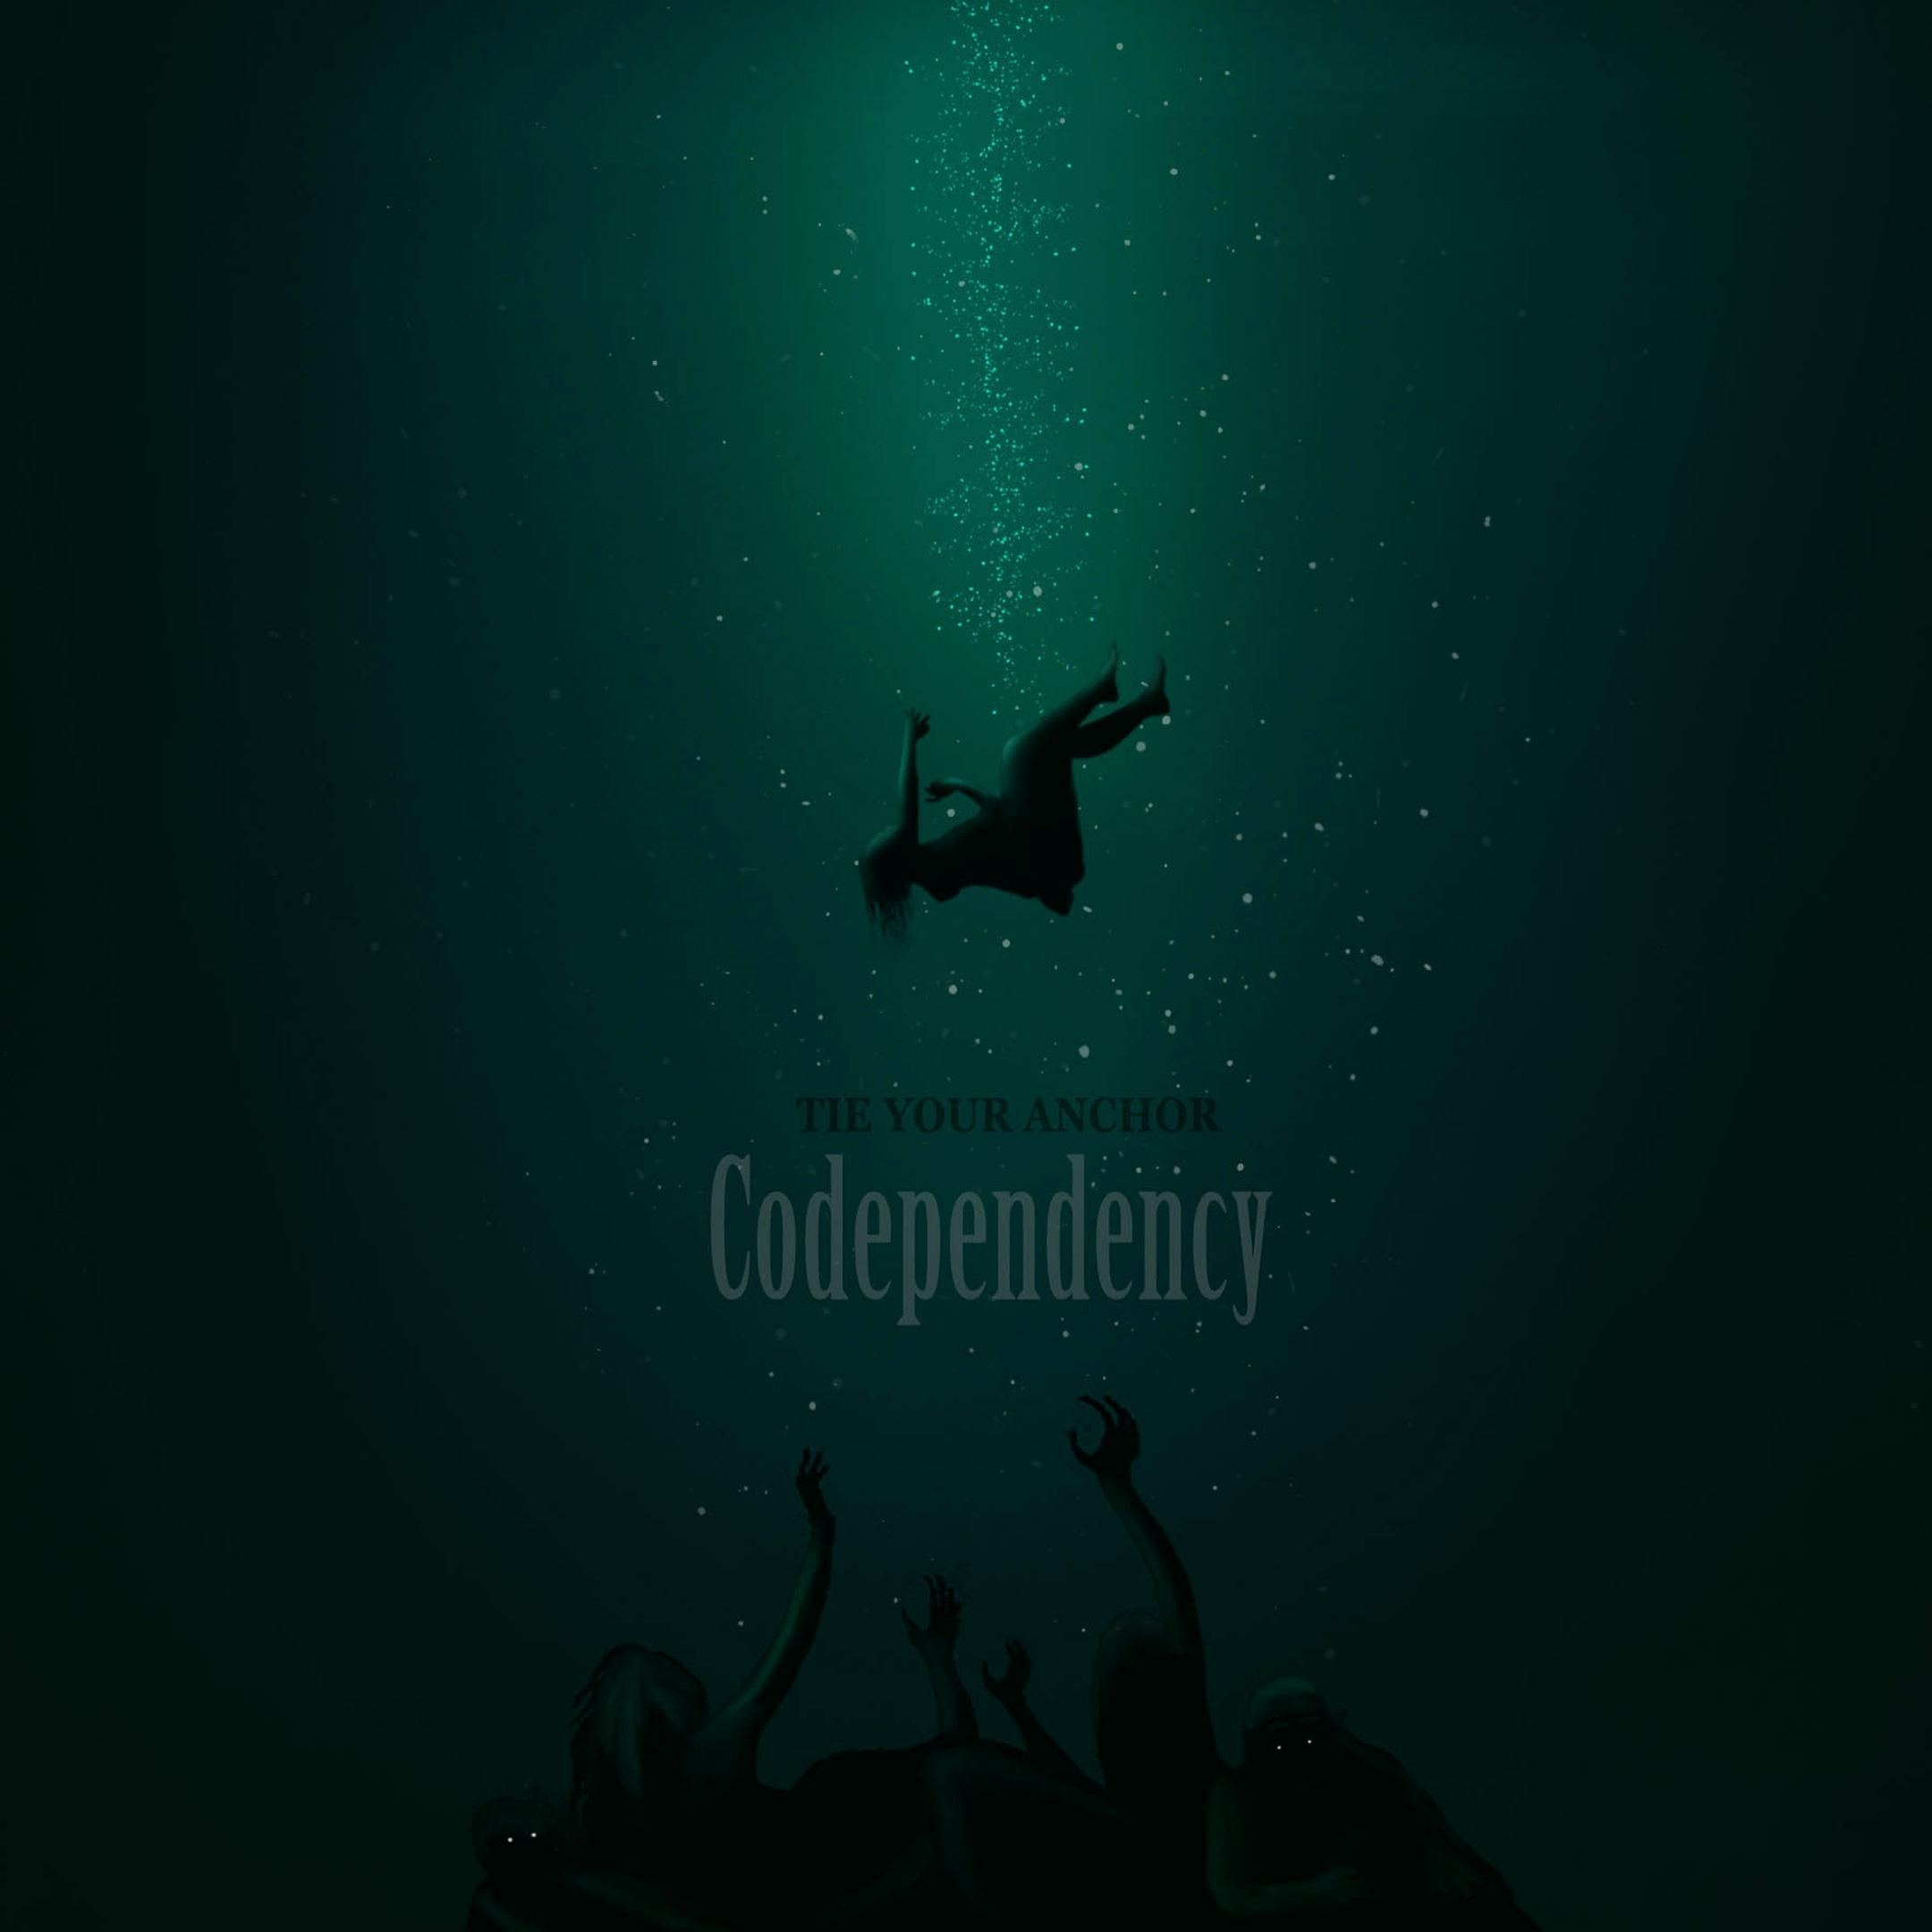 Tie Your Anchor - Codependency (2019)